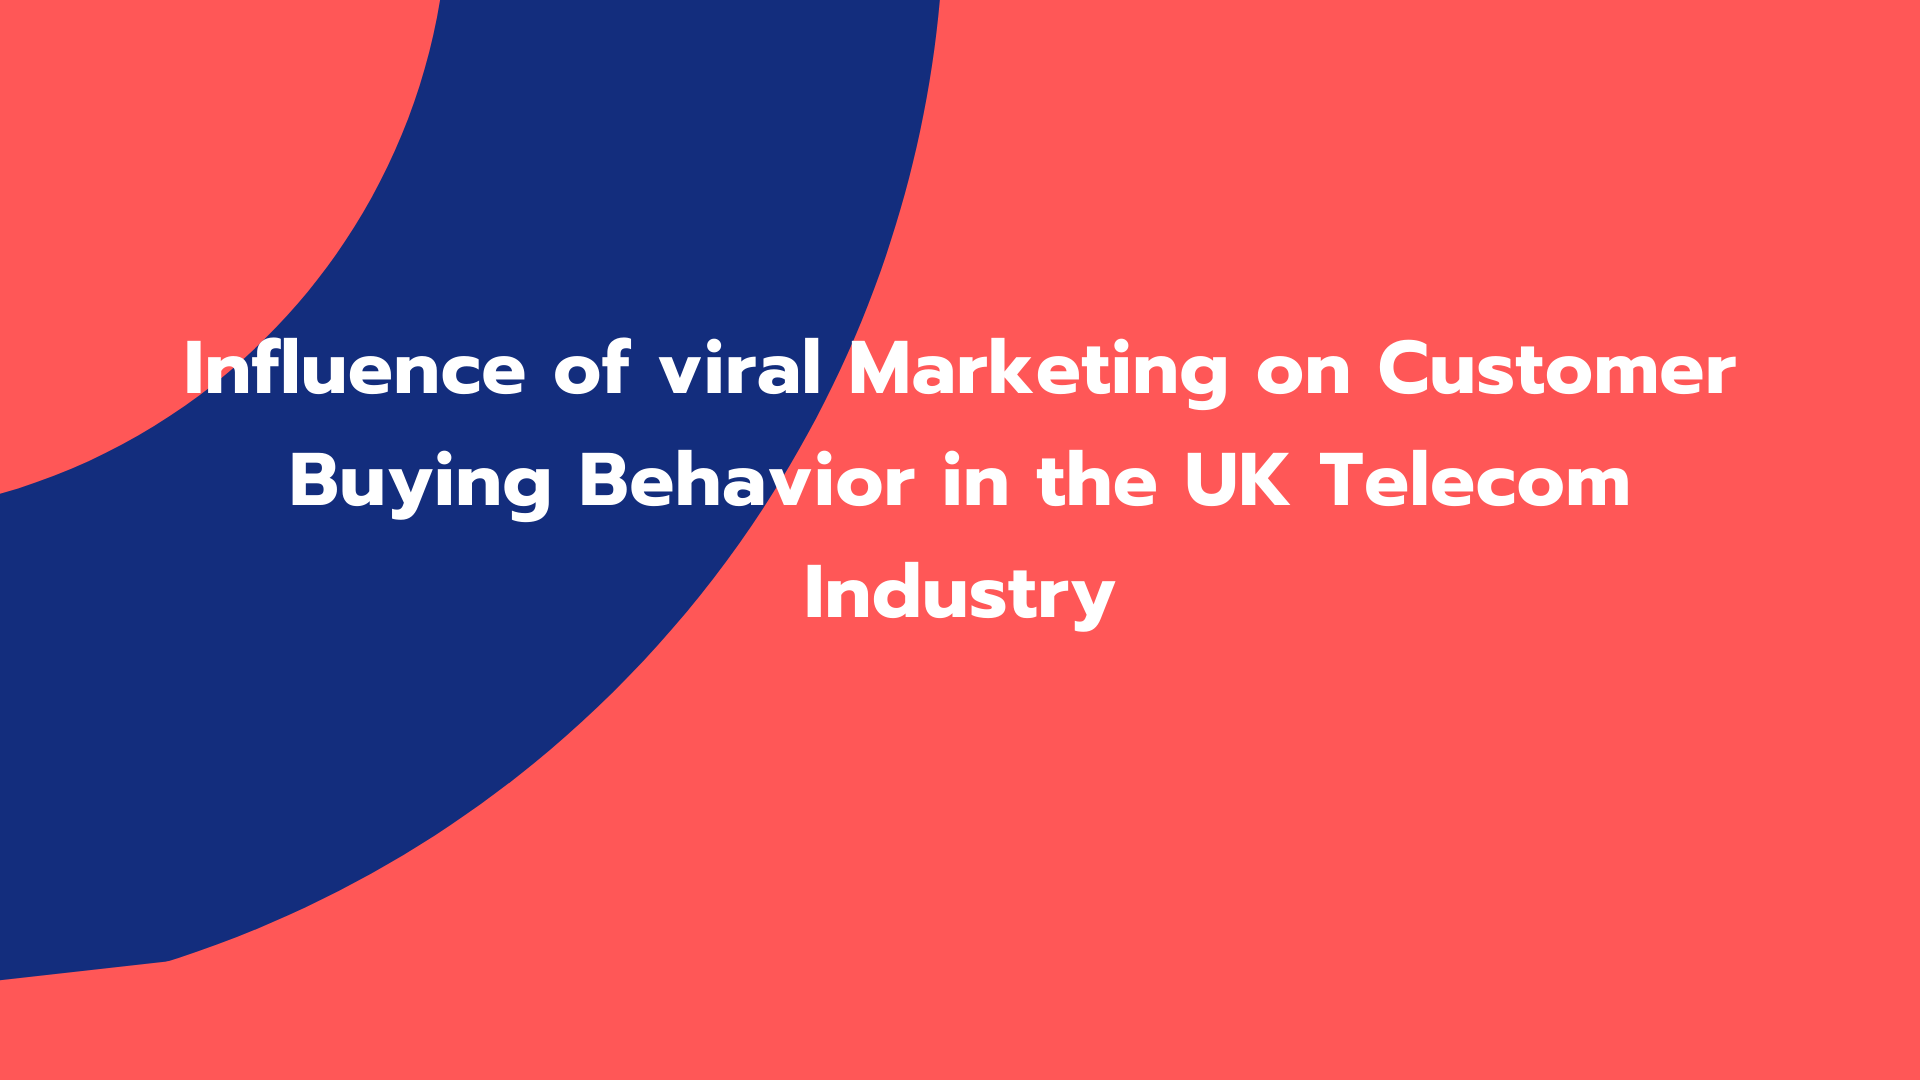 Influence of viral Marketing on Customer Buying Behavior in the UK Telecom Industry